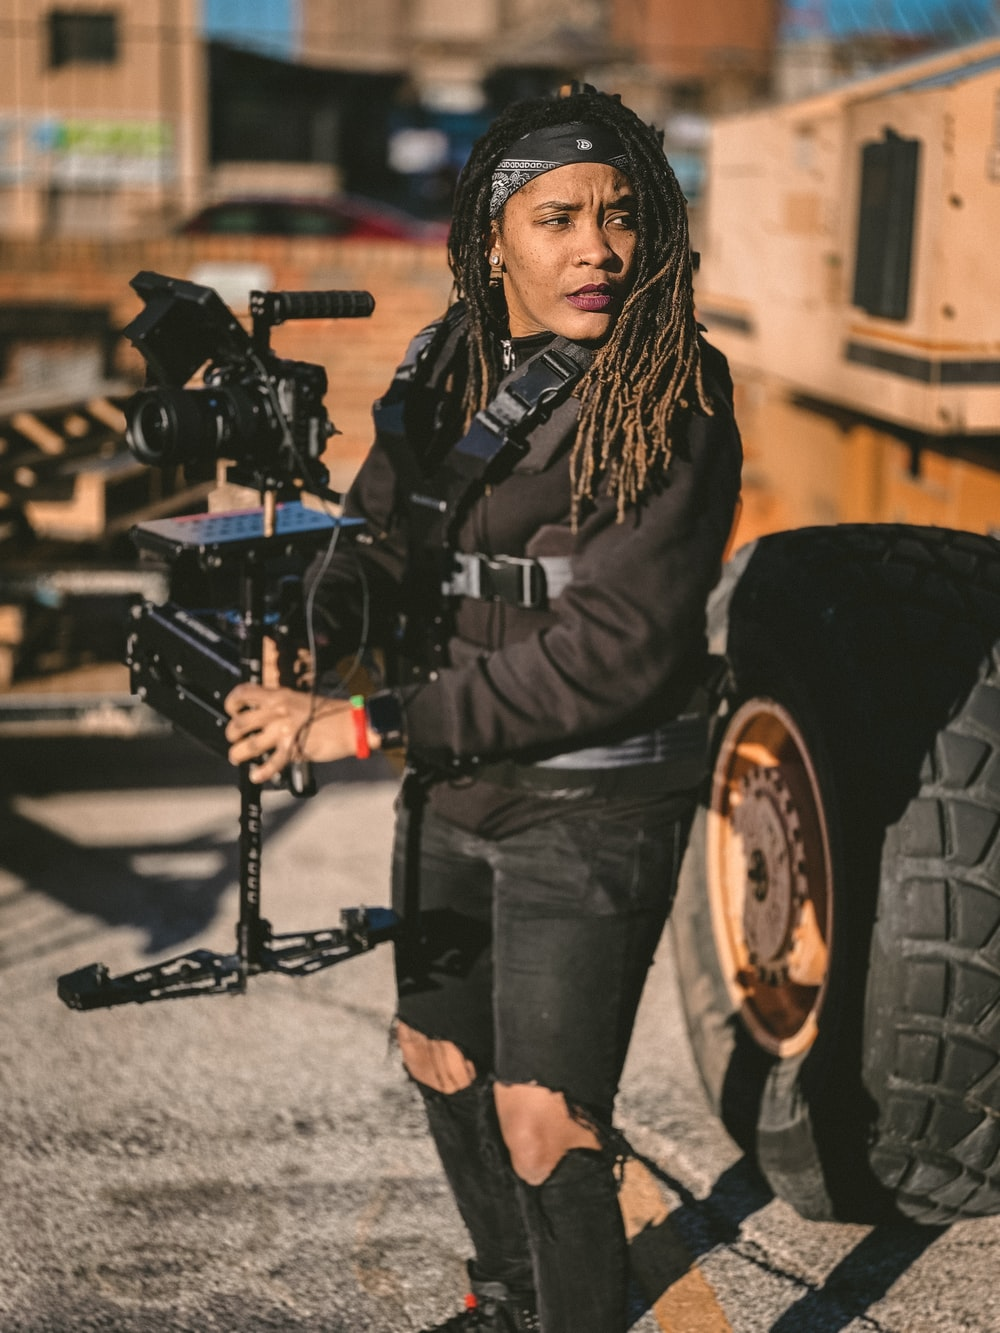 woman wearing black ripped jeans holding camera